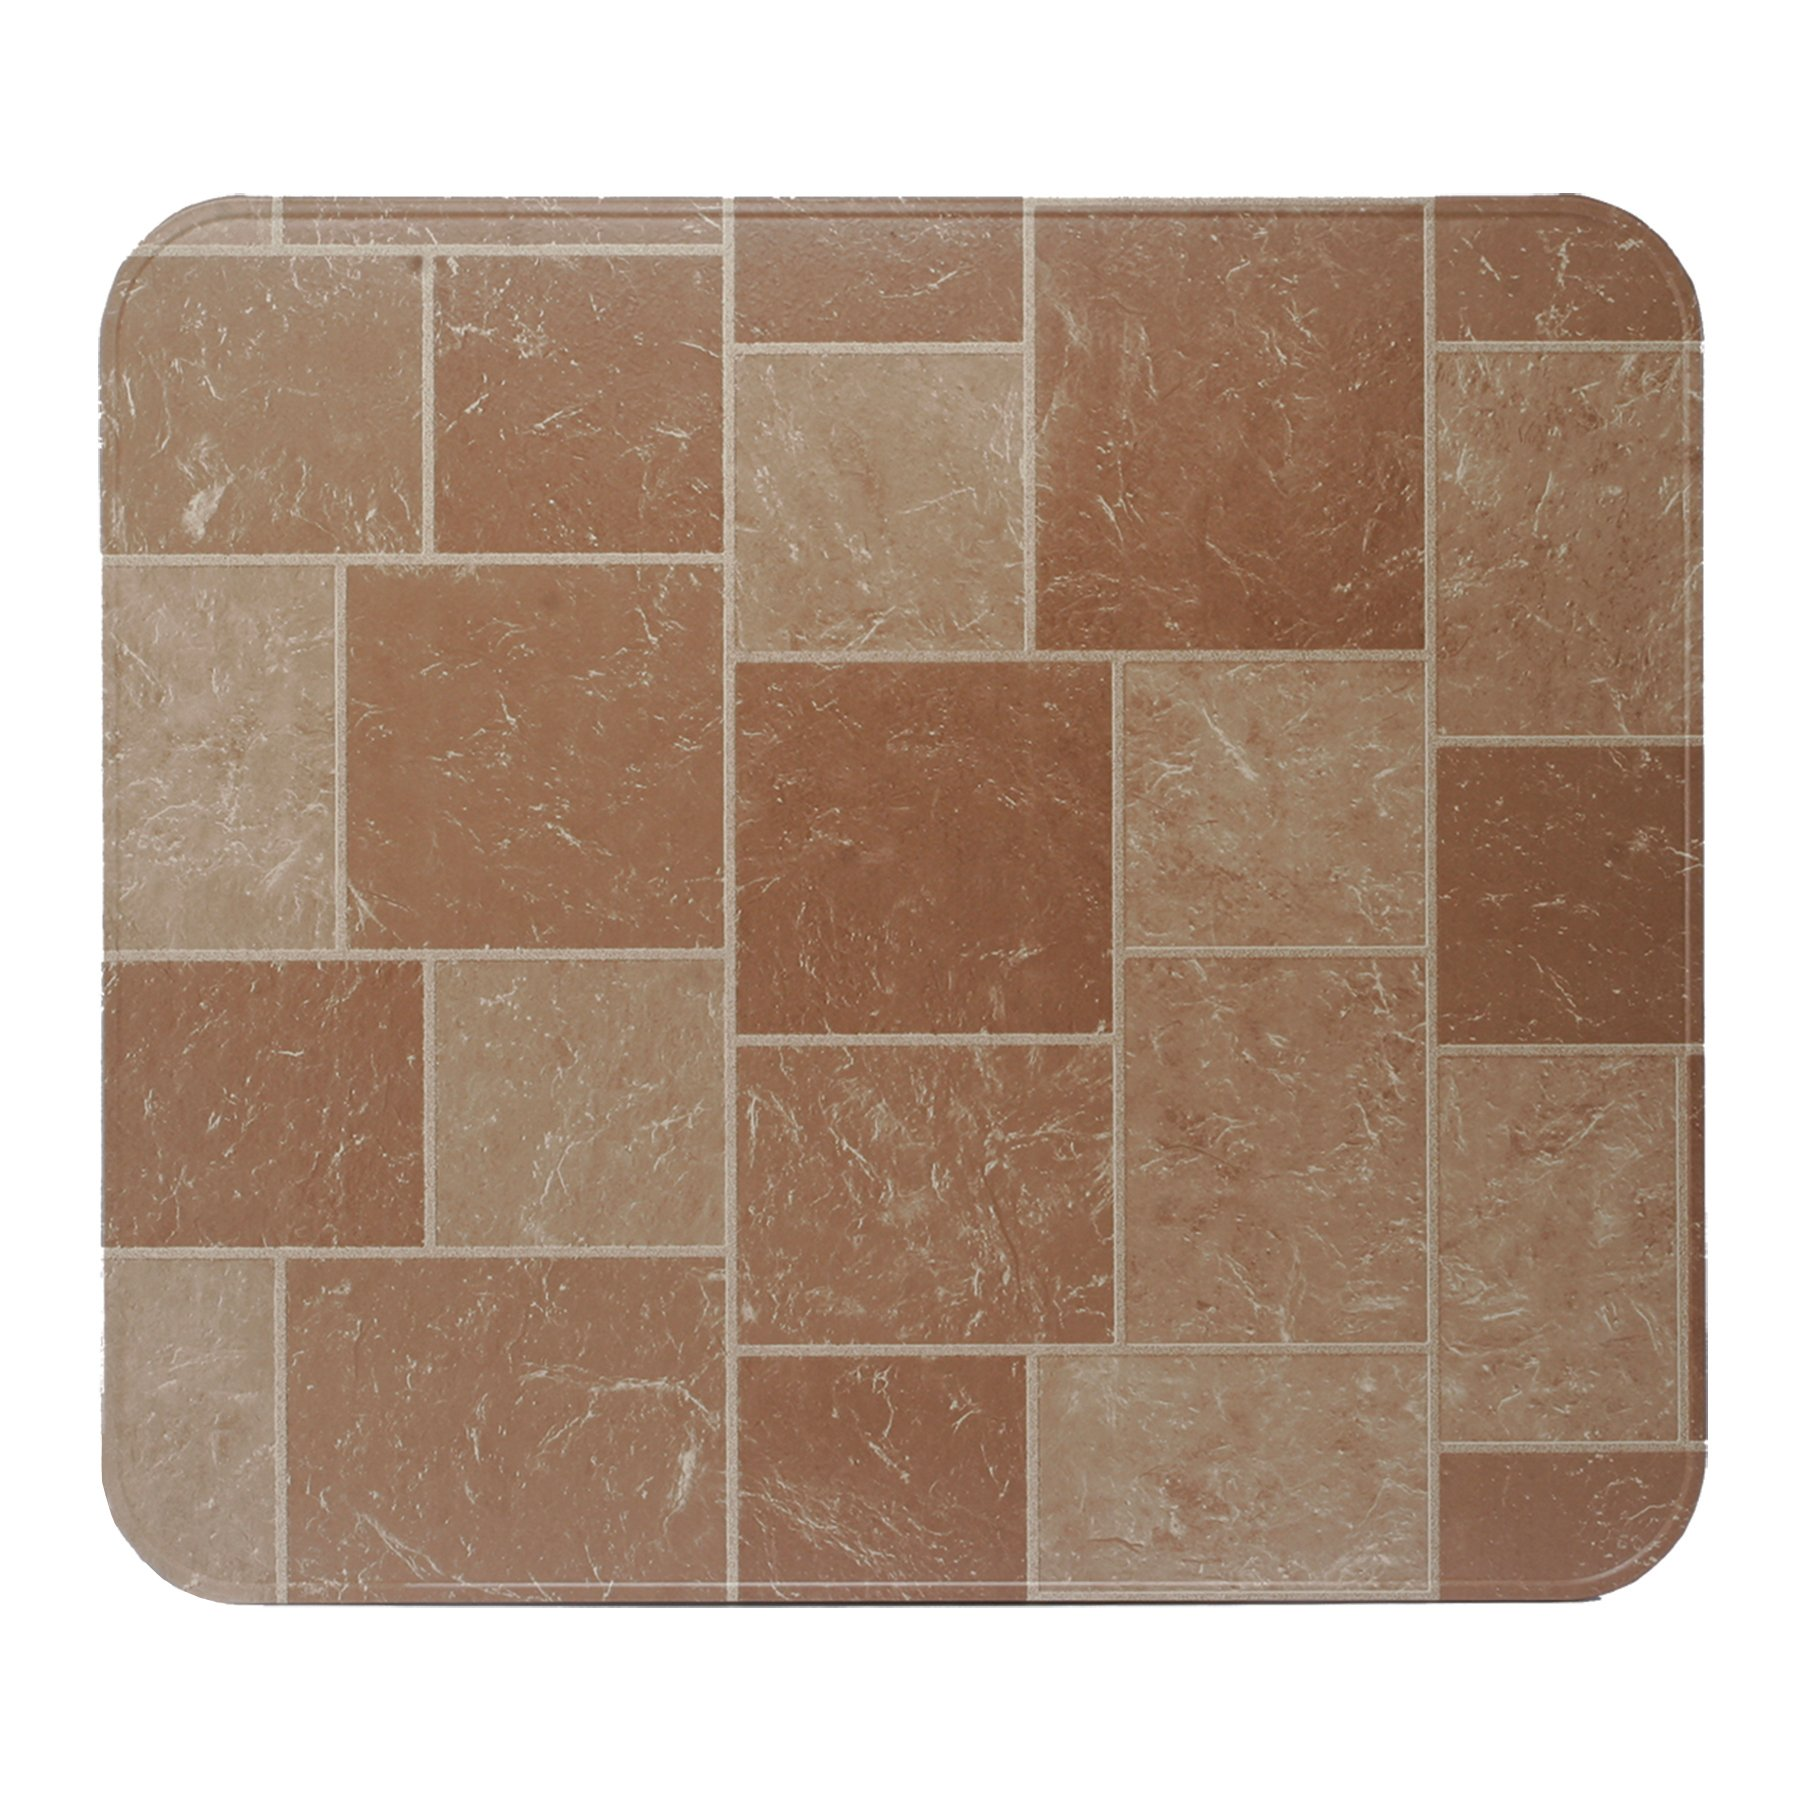 HY-C UL1618 Type 2 Stove Board, 36 by 52-Inch, Sandstone